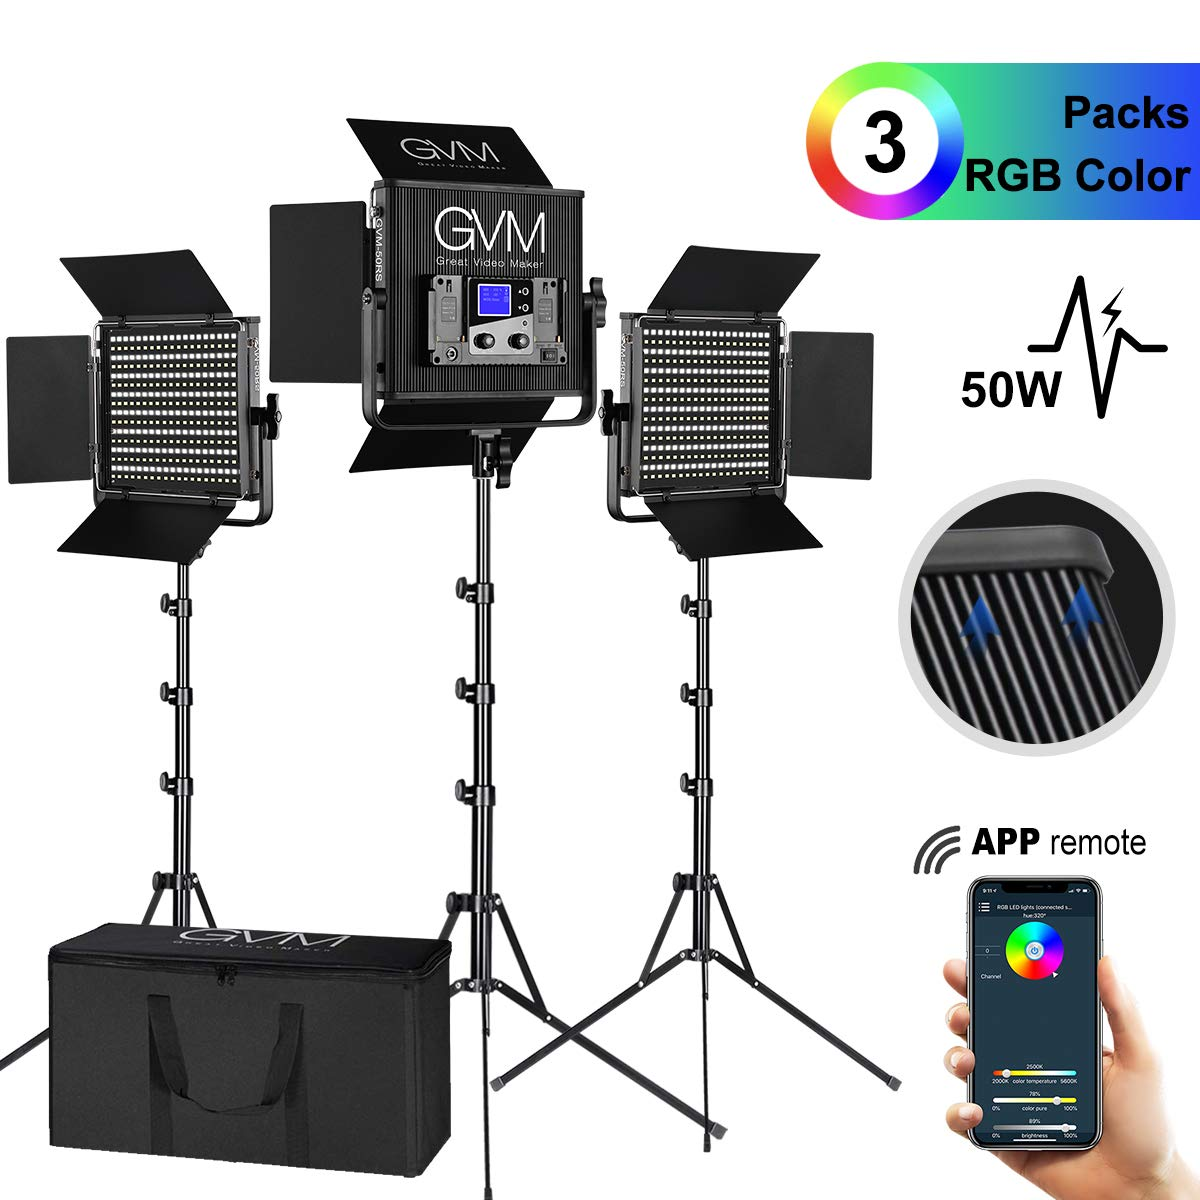 GVM 3 Pieces RGB Video Lighs Kit with APP Control CRI97 Variety Color and Brightness Dimmable 2000K-5600K LED Photography Lighting kit with Stand for YouTube Studio Photography Camera Video Lighting by GVM Great Video Maker